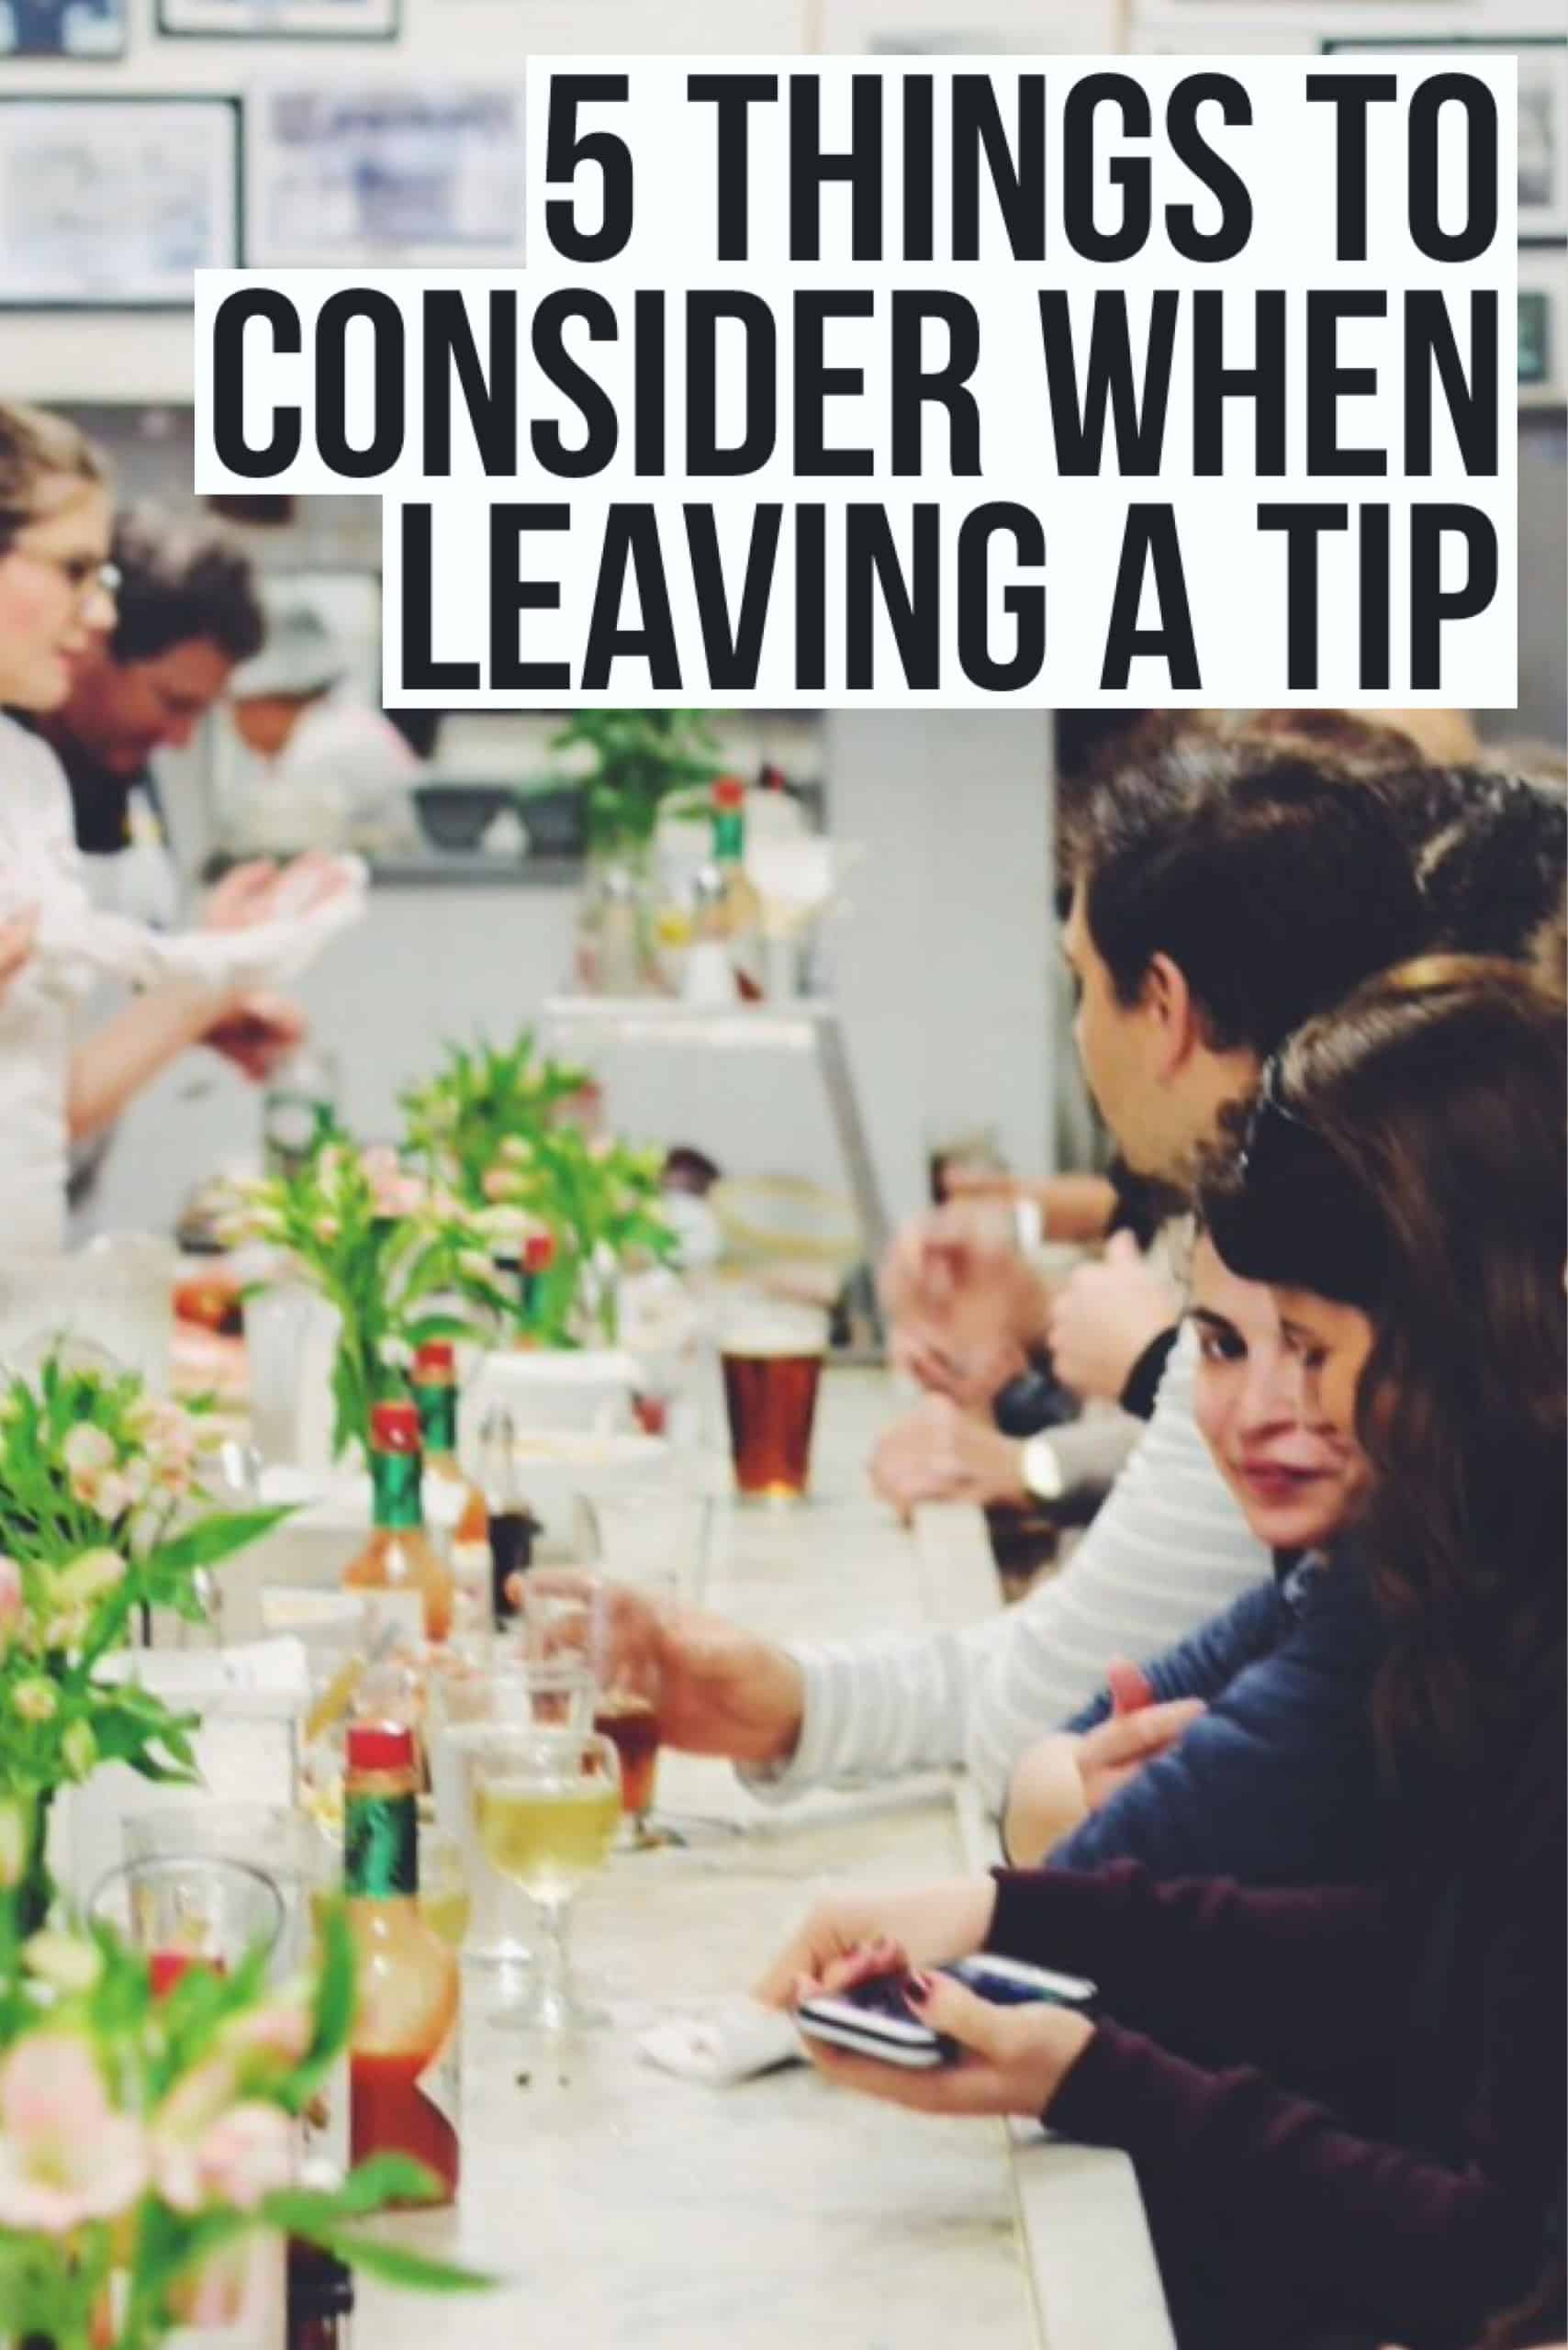 5 Things to Consider When Leaving a Tip. The do's and don'ts of tipping in a restaurant.